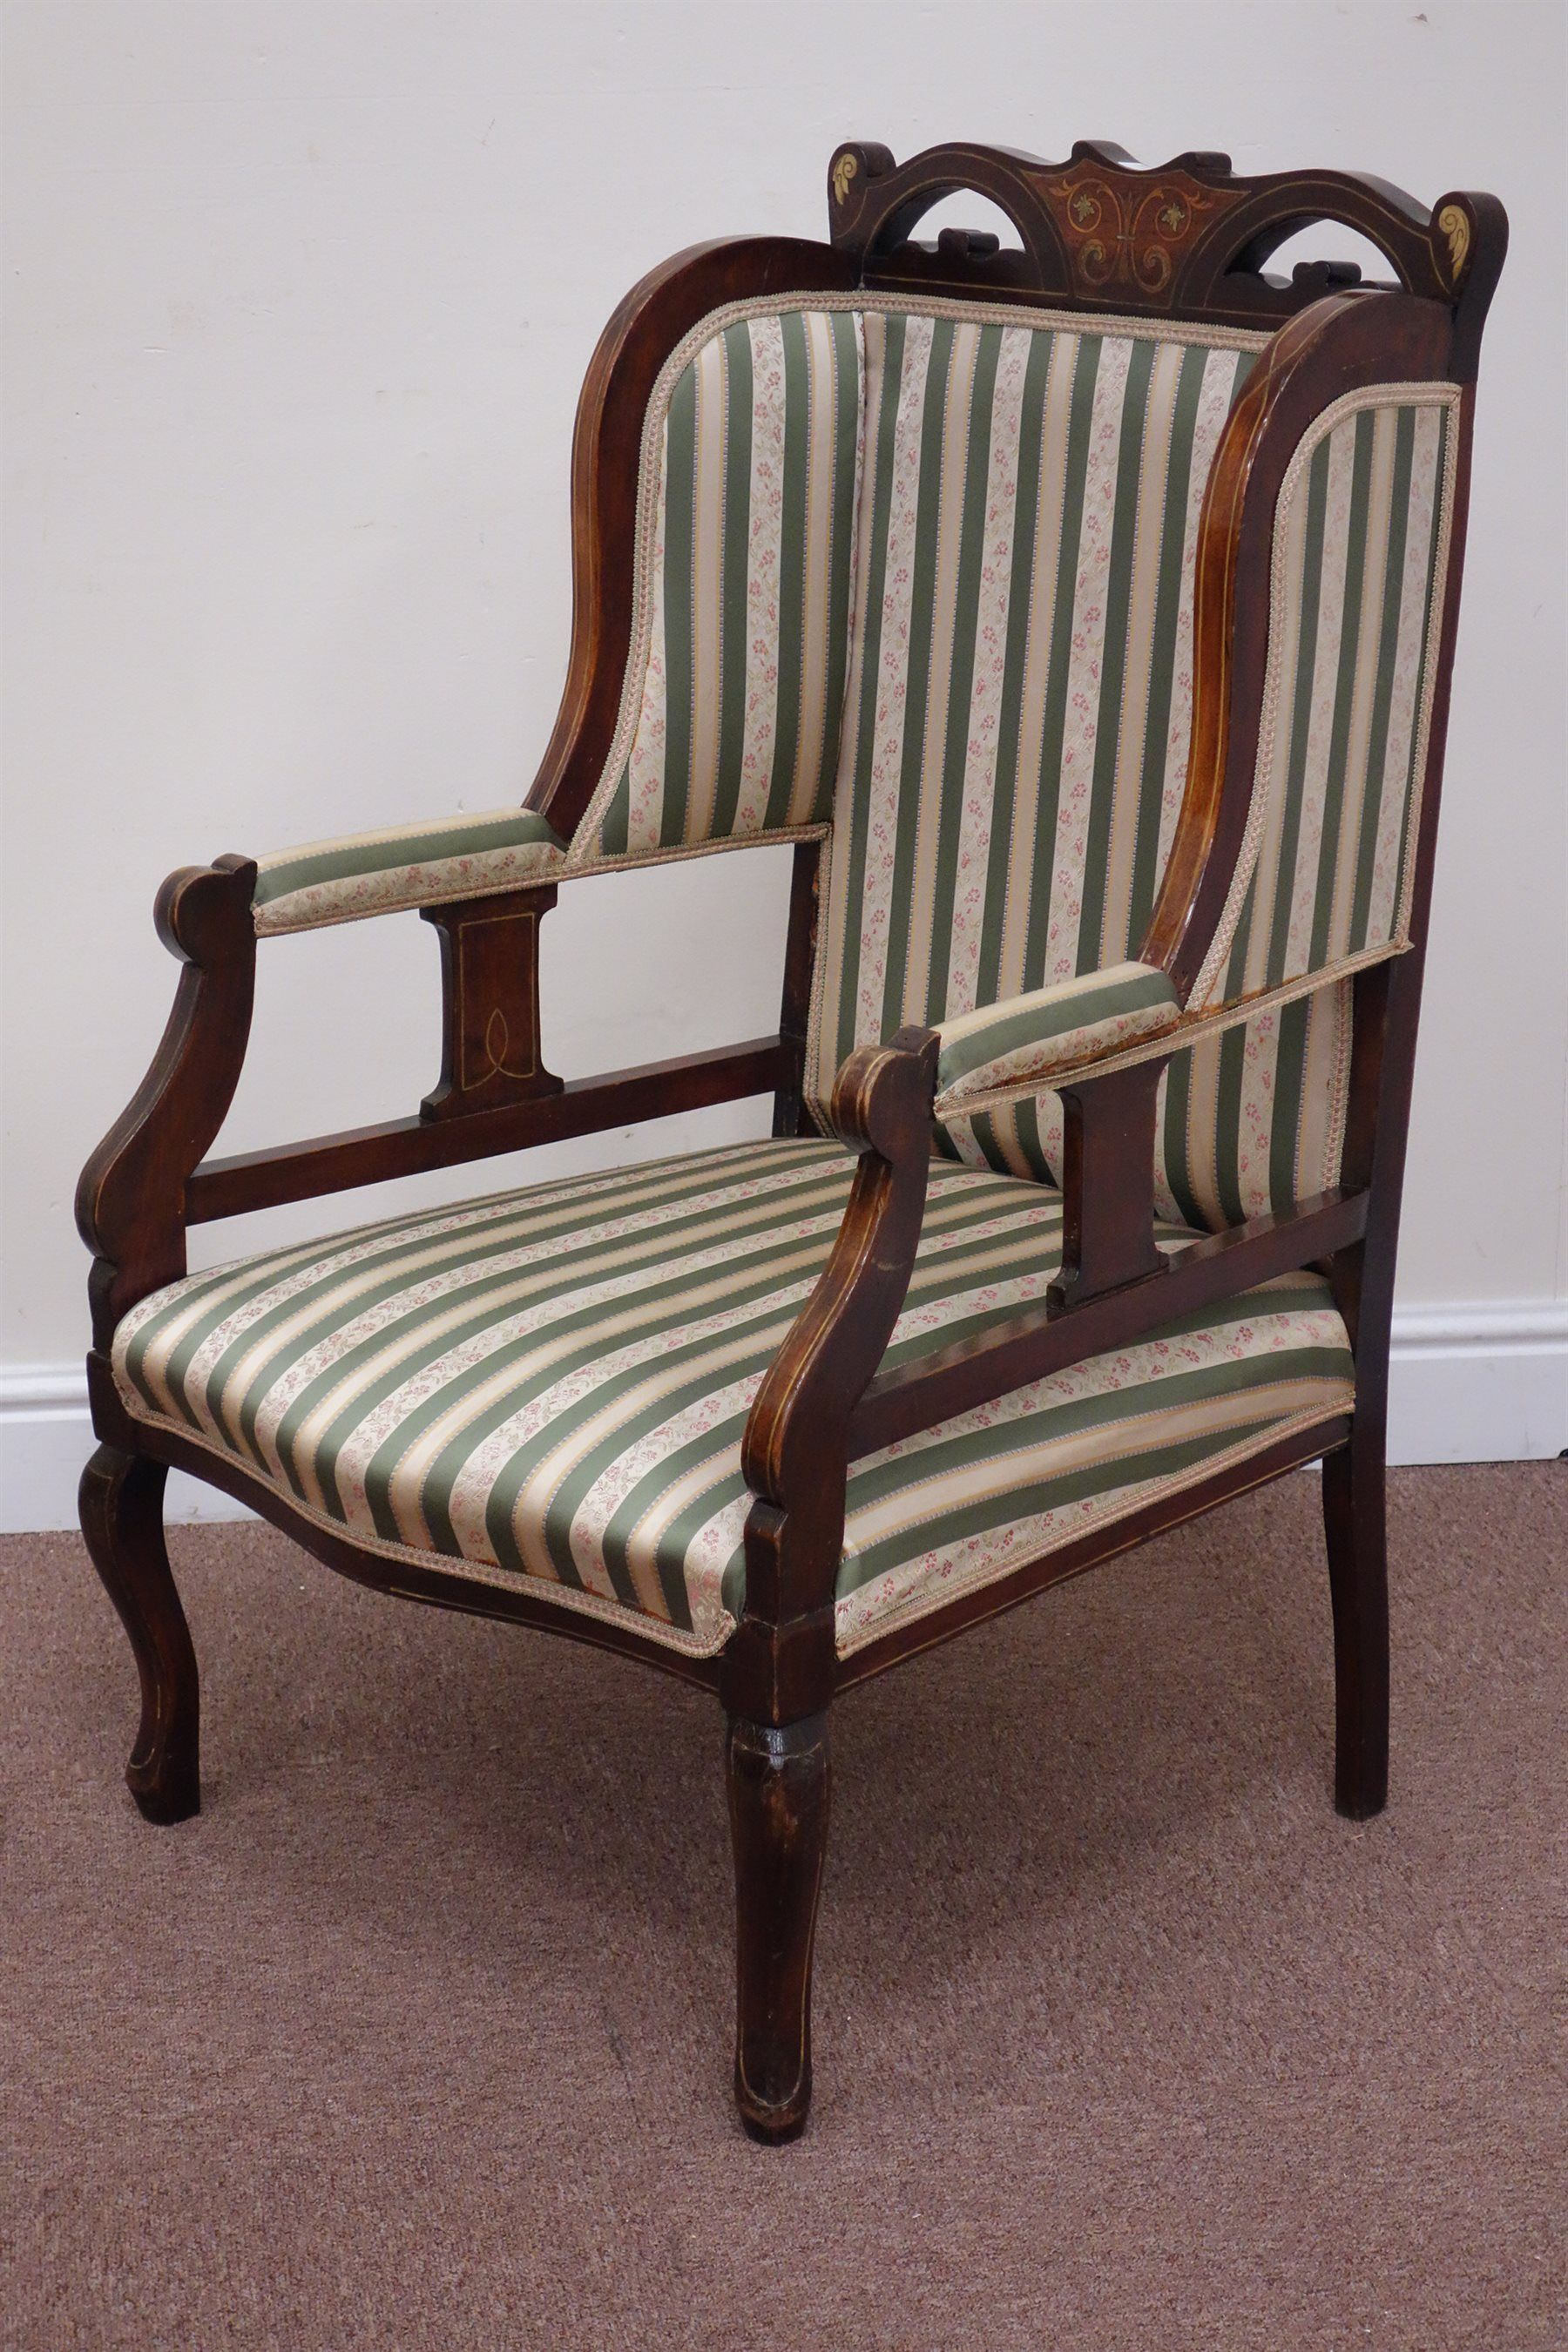 Merveilleux Edwardian Inlaid Mahogany Wingback Armchair Upholstered In Striped Fabric